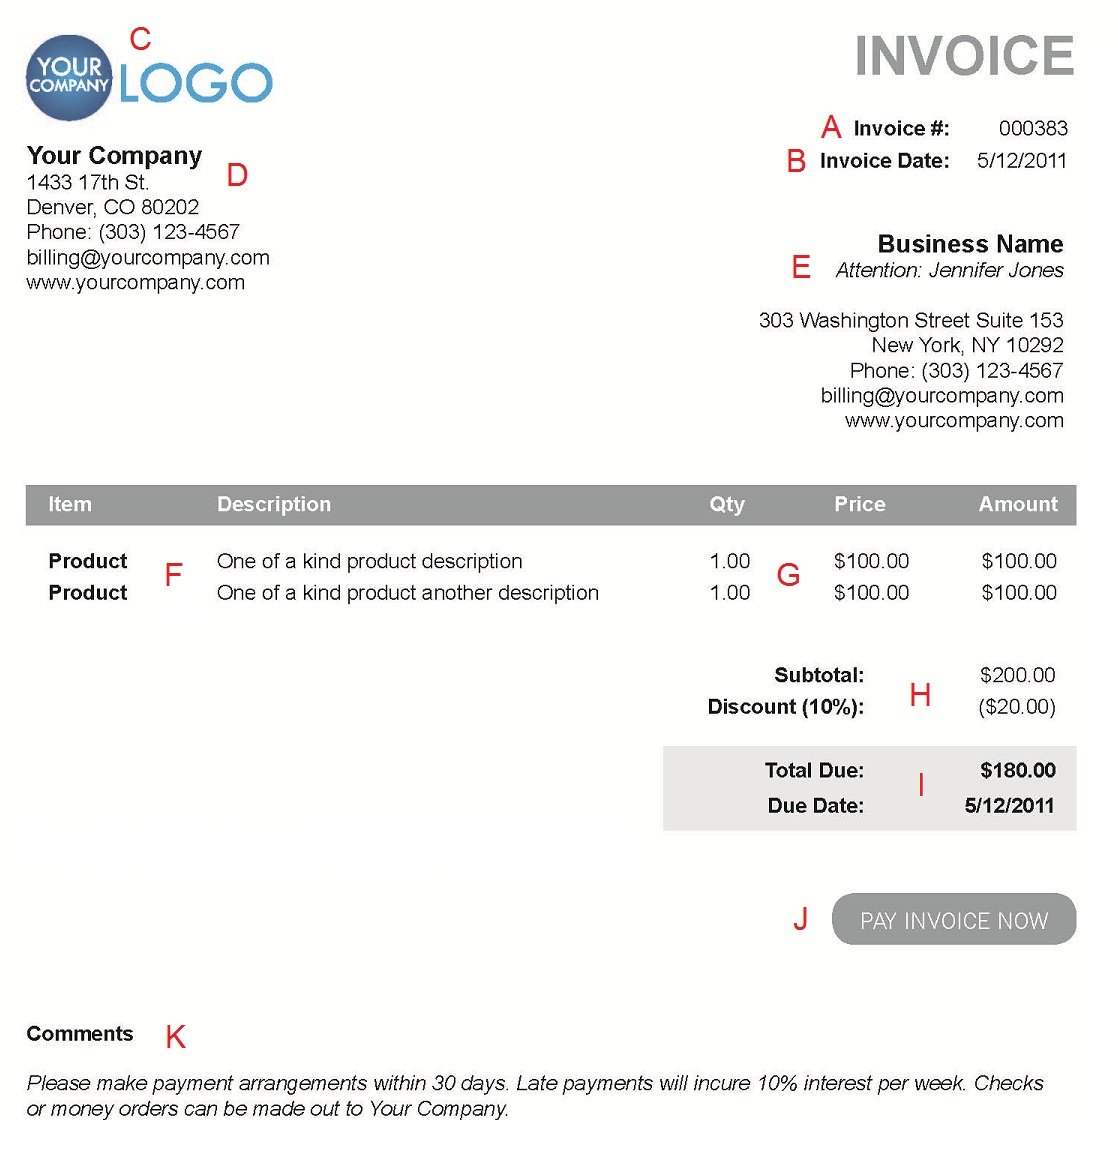 Theologygeekblogus  Fascinating The  Different Sections Of An Electronic Payment Invoice With Fair A  With Delectable Free Google Invoice Template Also Invoice Template Creator In Addition Download Invoices And Bill Invoice Format In Word As Well As Tax Invoice Nz Additionally Fiscal Invoice From Paysimplecom With Theologygeekblogus  Fair The  Different Sections Of An Electronic Payment Invoice With Delectable A  And Fascinating Free Google Invoice Template Also Invoice Template Creator In Addition Download Invoices From Paysimplecom